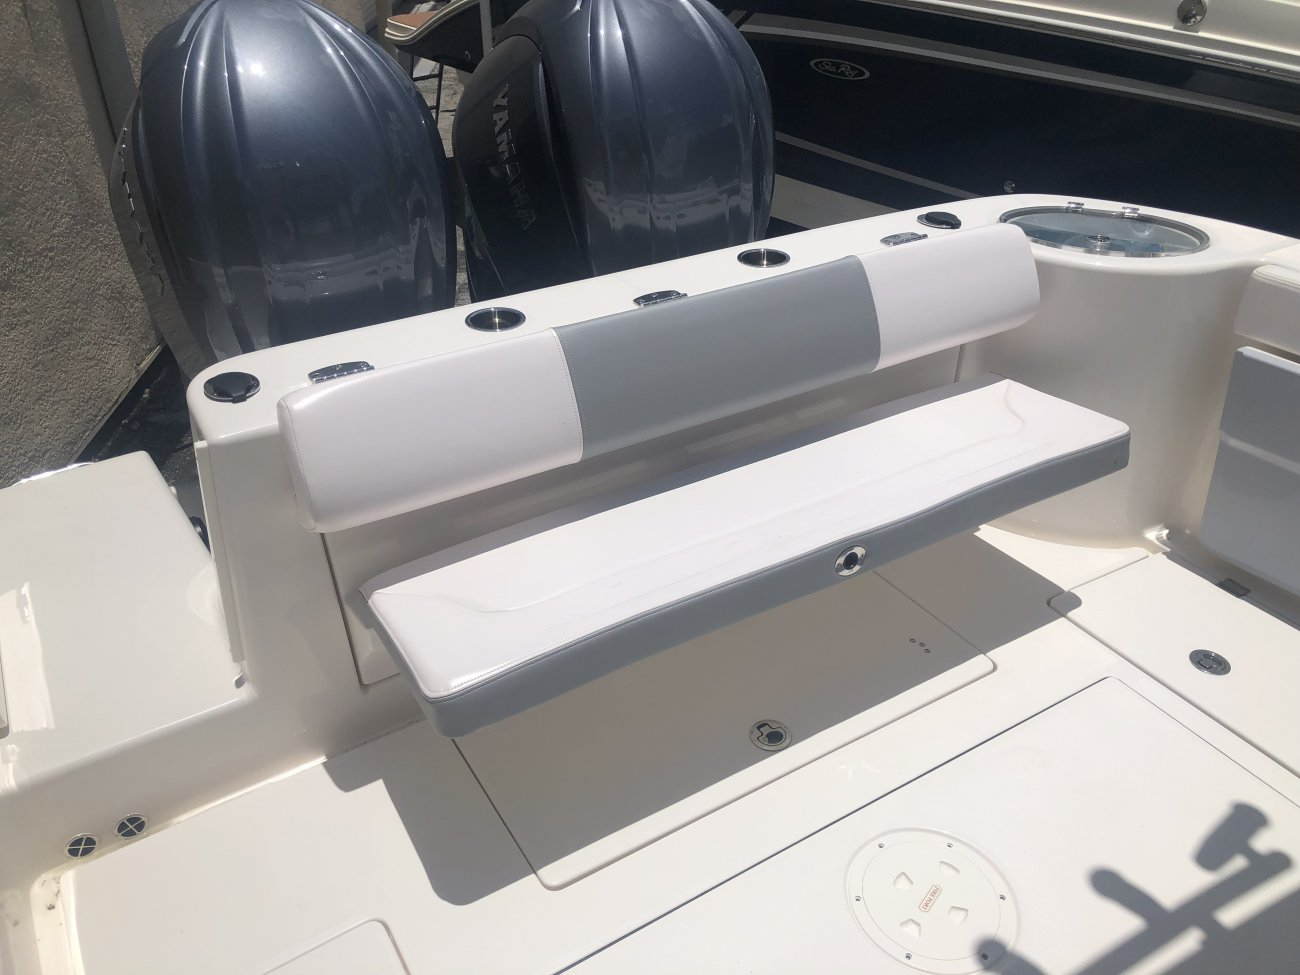 A R302 Center Console is a Power and could be classed as a Center Console, Cruiser, Express Cruiser, High Performance, Saltwater Fishing, Sport Fisherman, Runabout,  or, just an overall Great Boat!